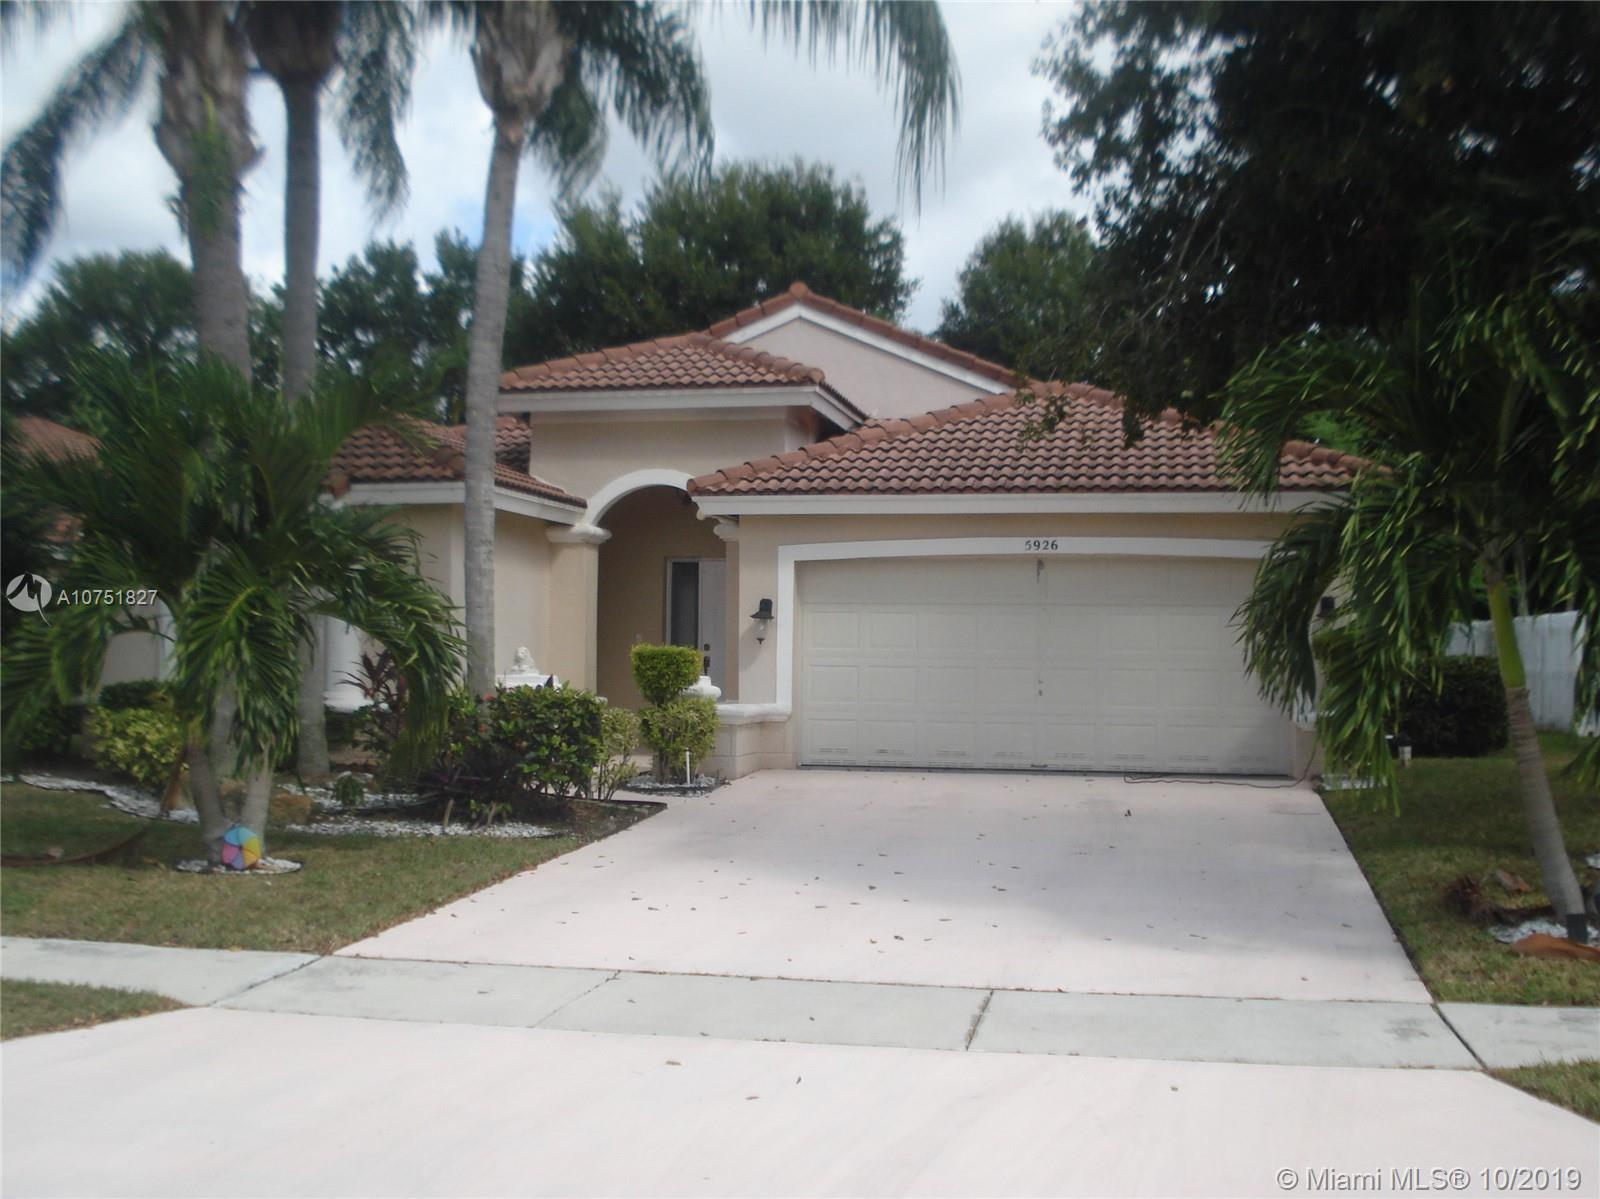 5926 Las Colinas Cir, Lake Worth, FL 33463